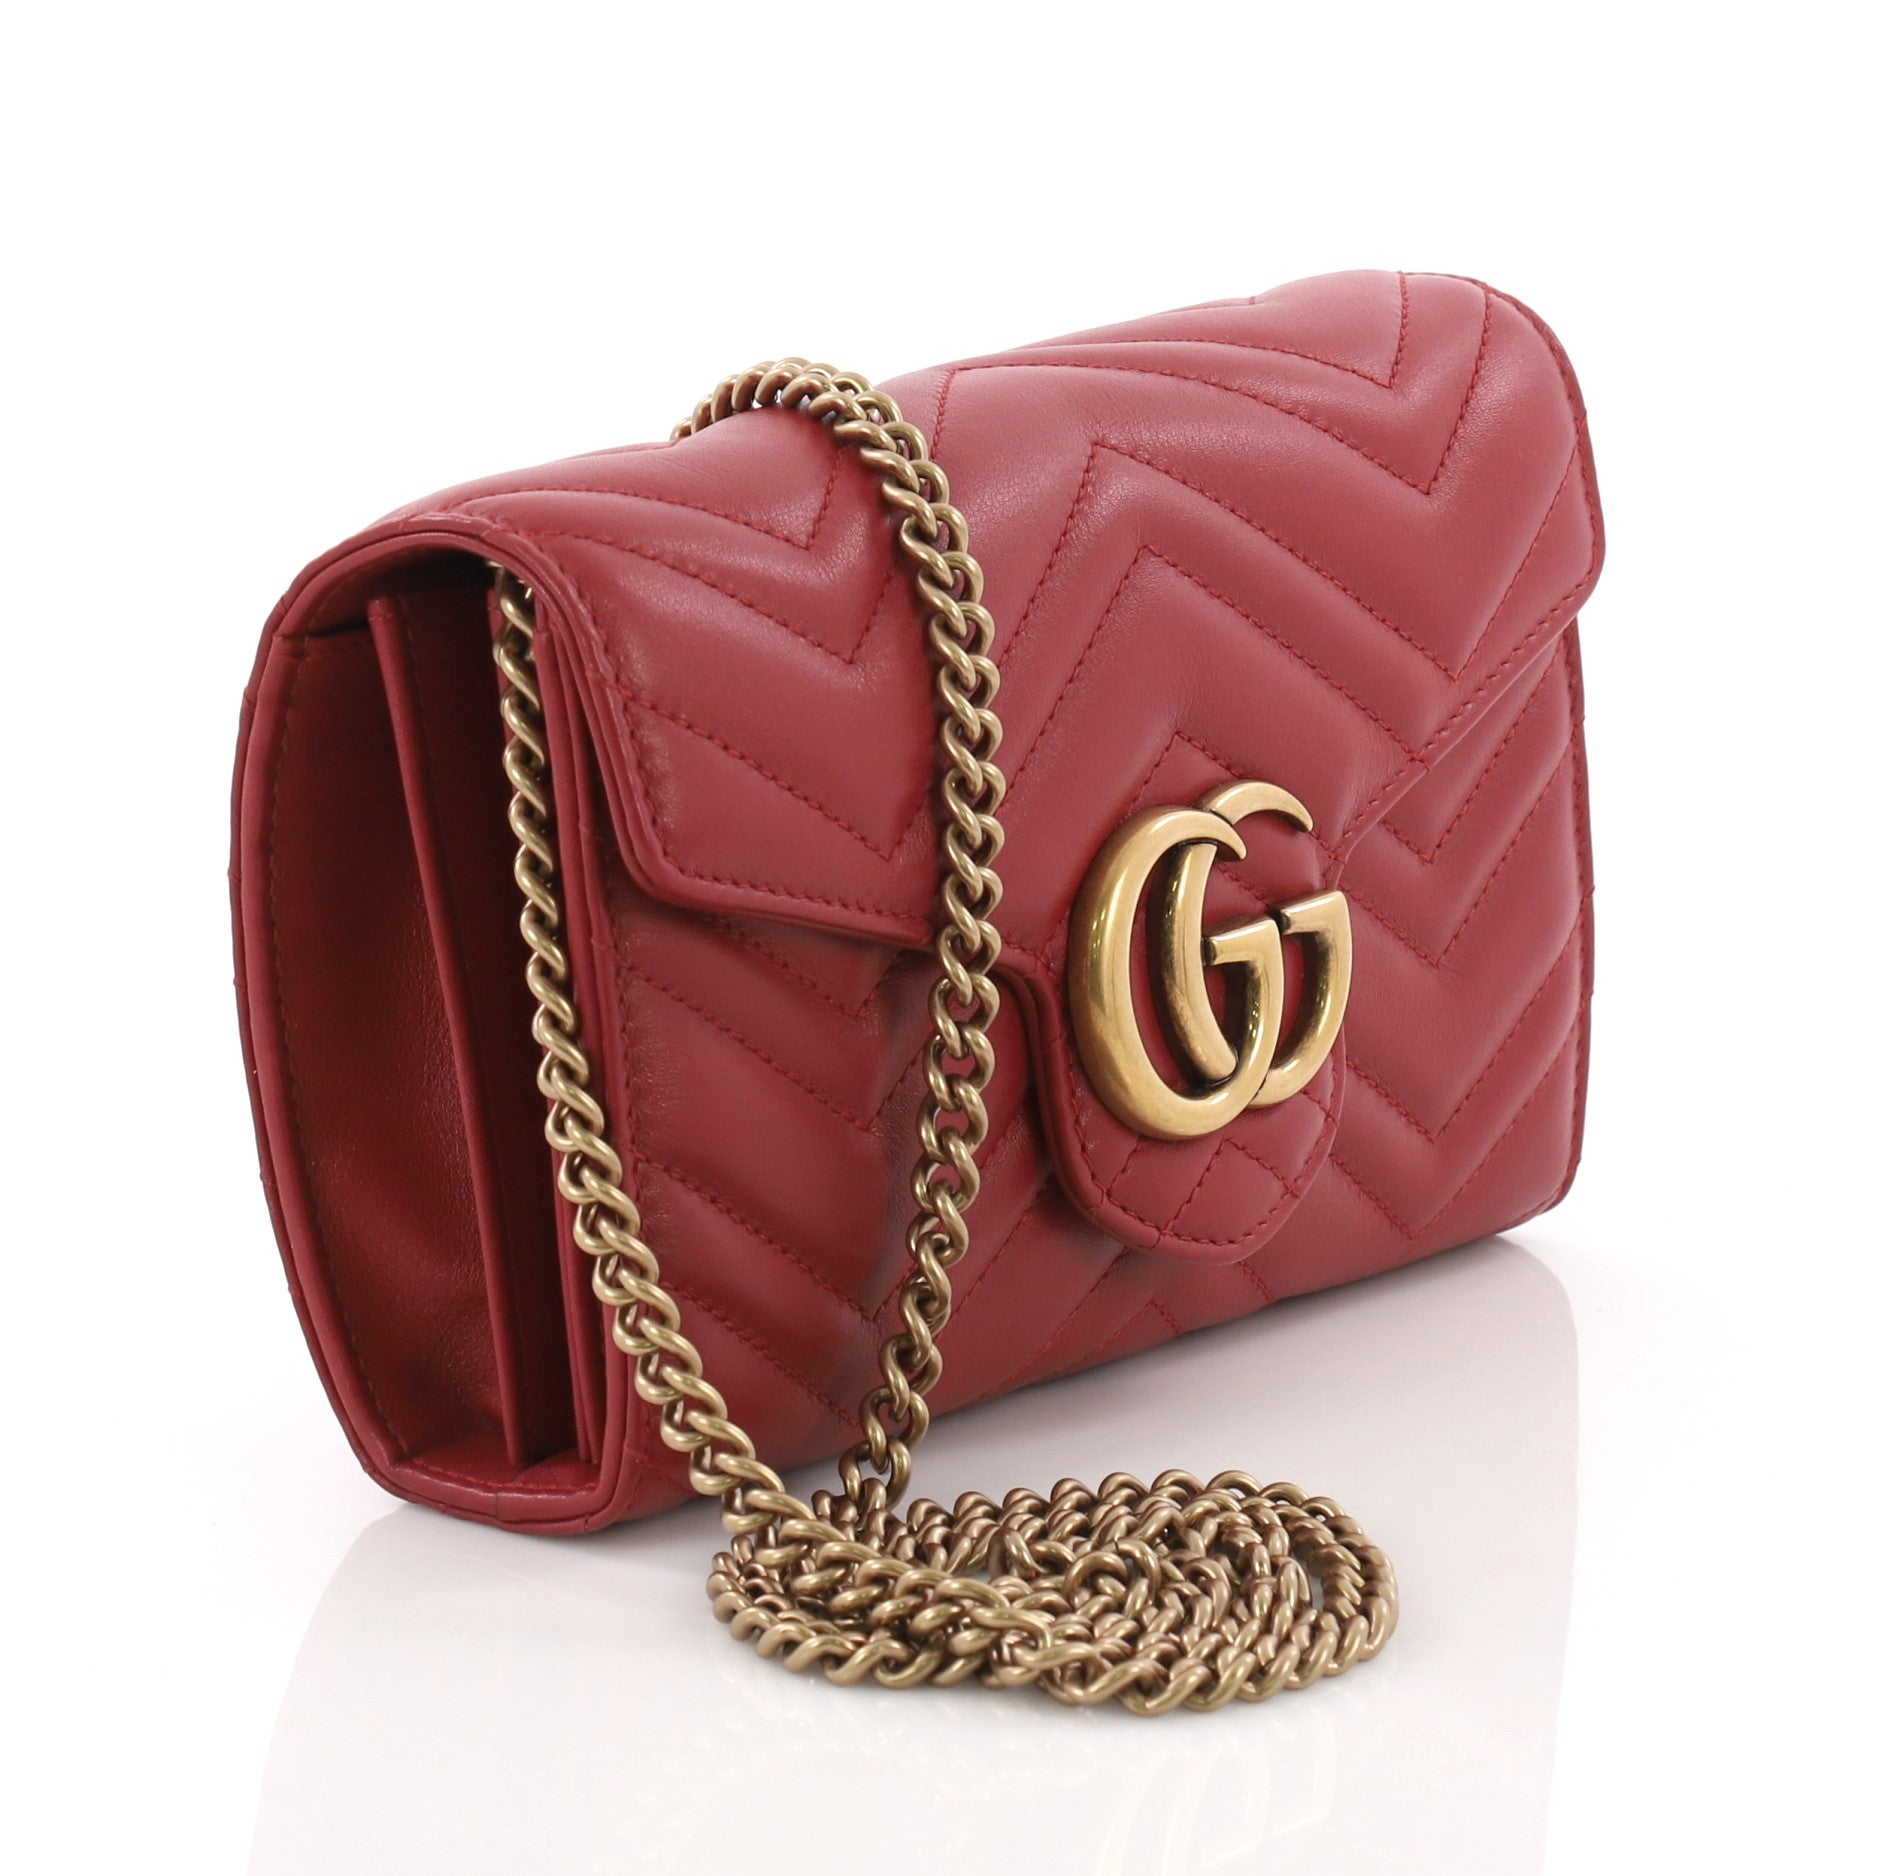 705840662348 Gucci GG Marmont Chain Wallet Matelasse Leather Mini at 1stdibs